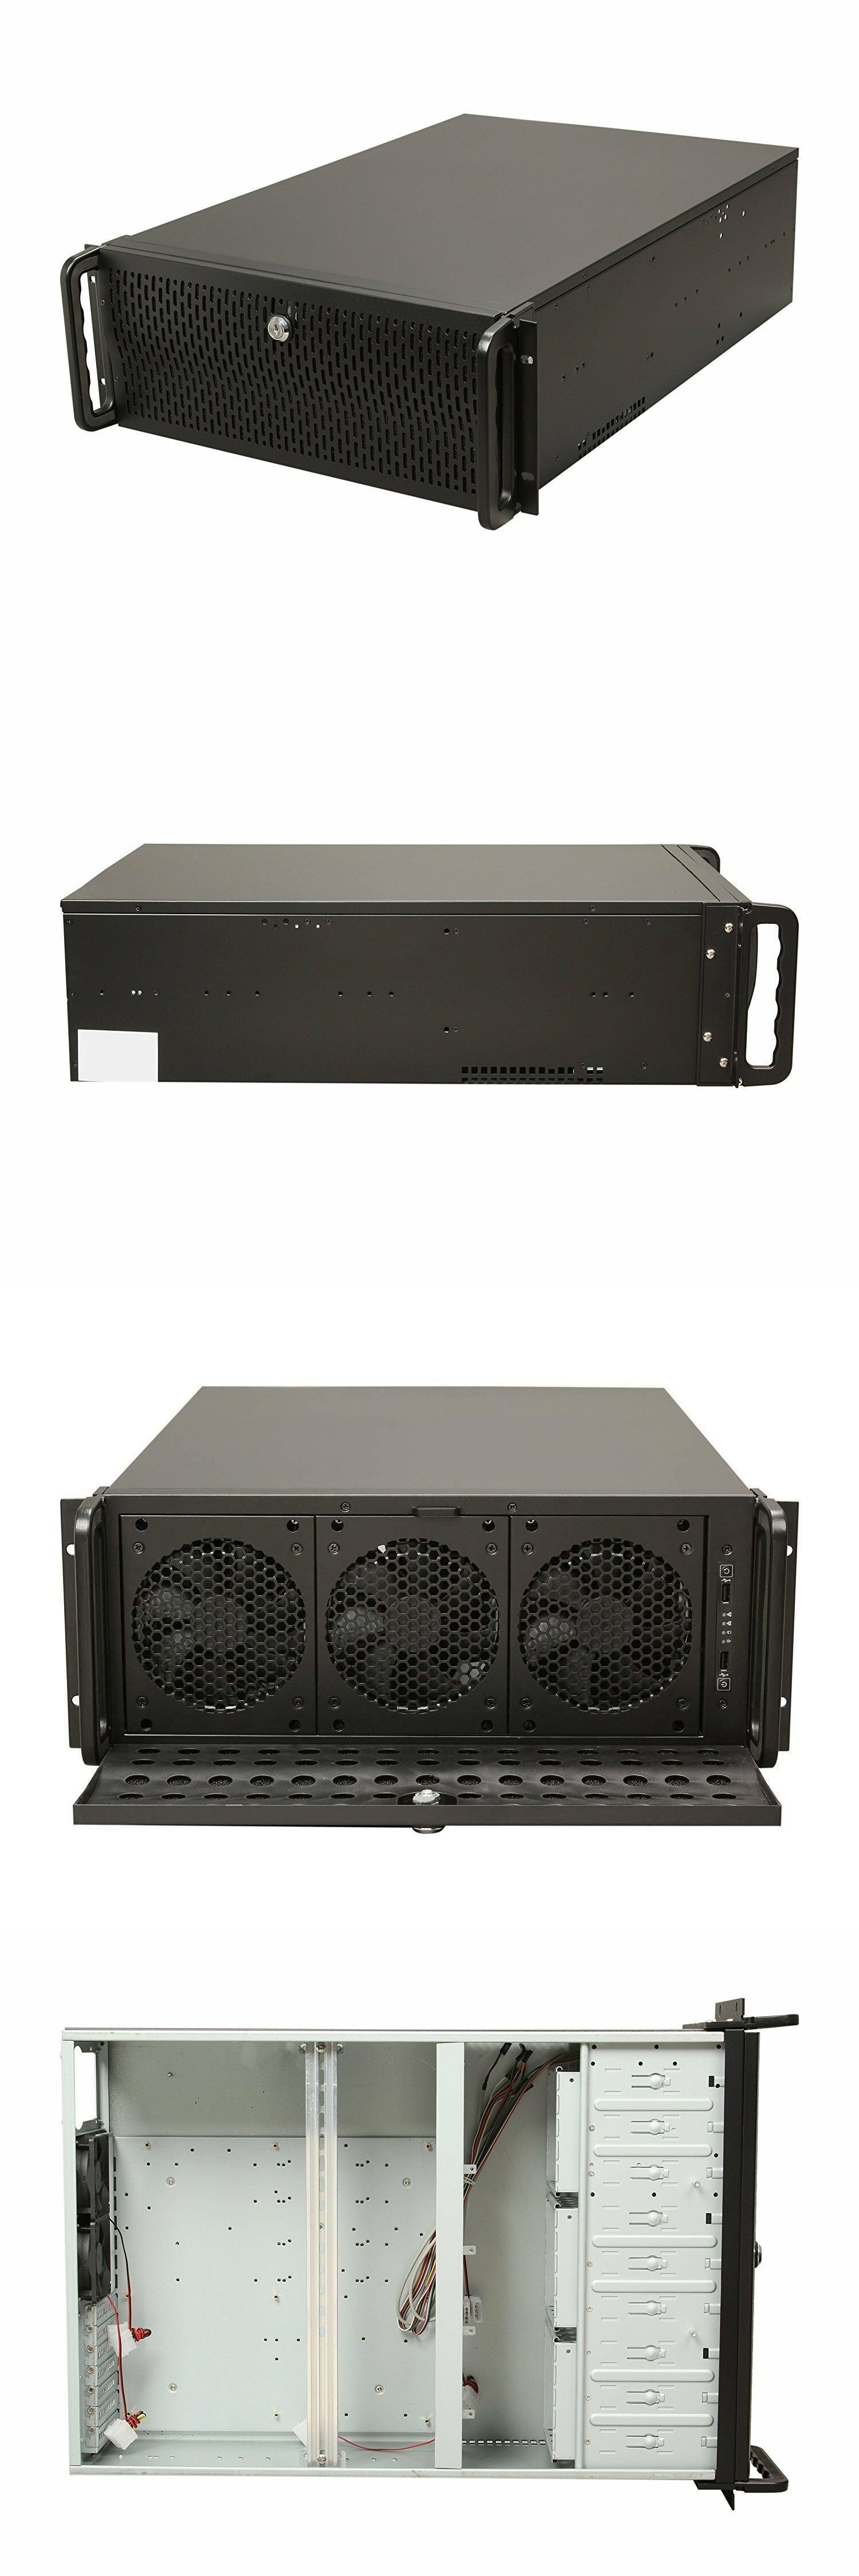 Rackmount Cases And Chassis 64061 Rosewill 4u Server Chassis Server Case Rackmount Case Metal Rack Mount Computer Speakers For Sale Buy Computer Metal Rack